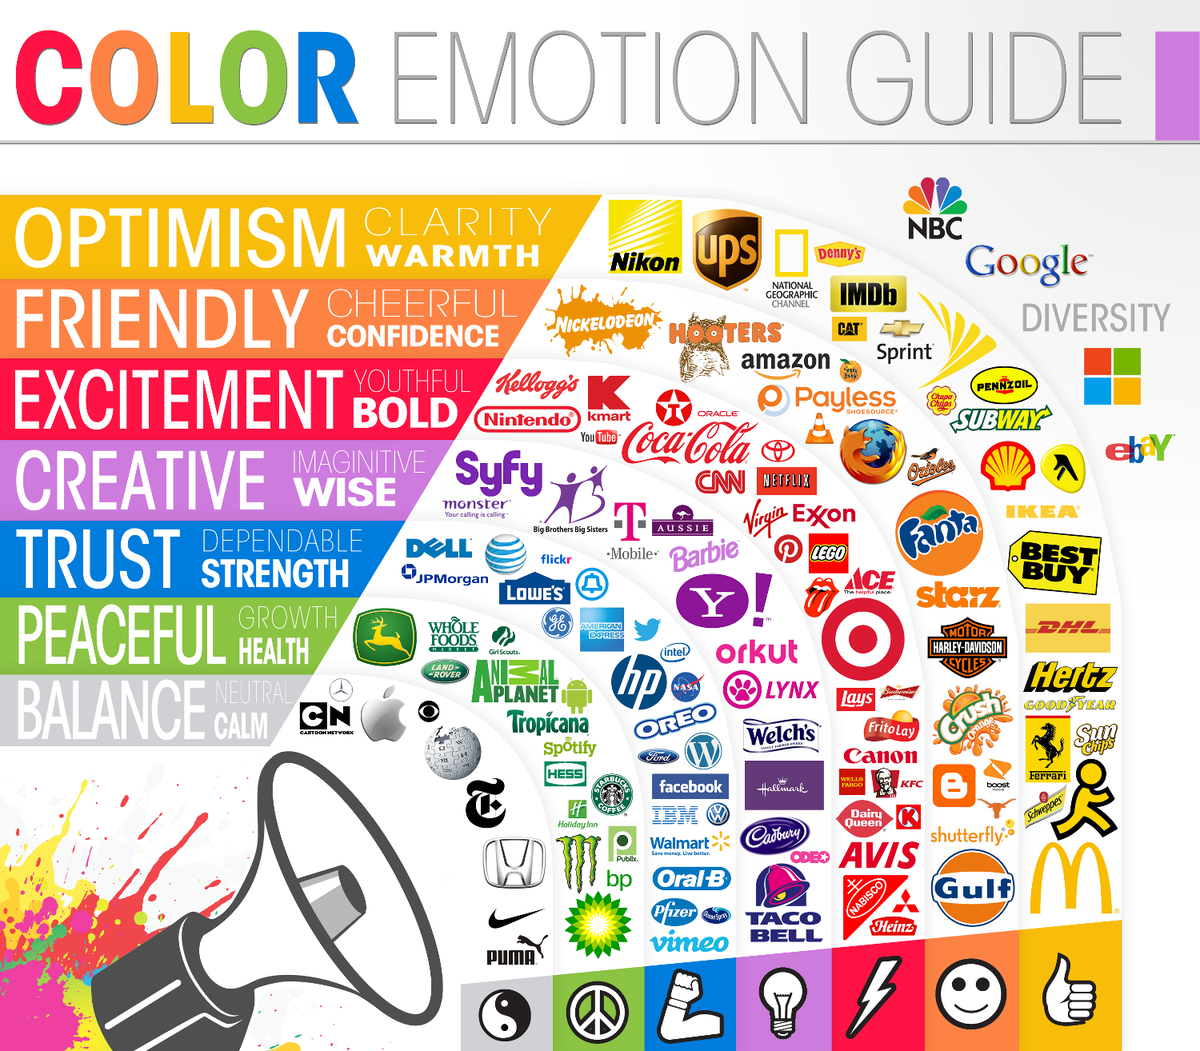 Why Facebook Is Blue: The Science of Colors in Marketing https://t.co/s35gq4RmIV http://t.co/z3CIsKhlHp